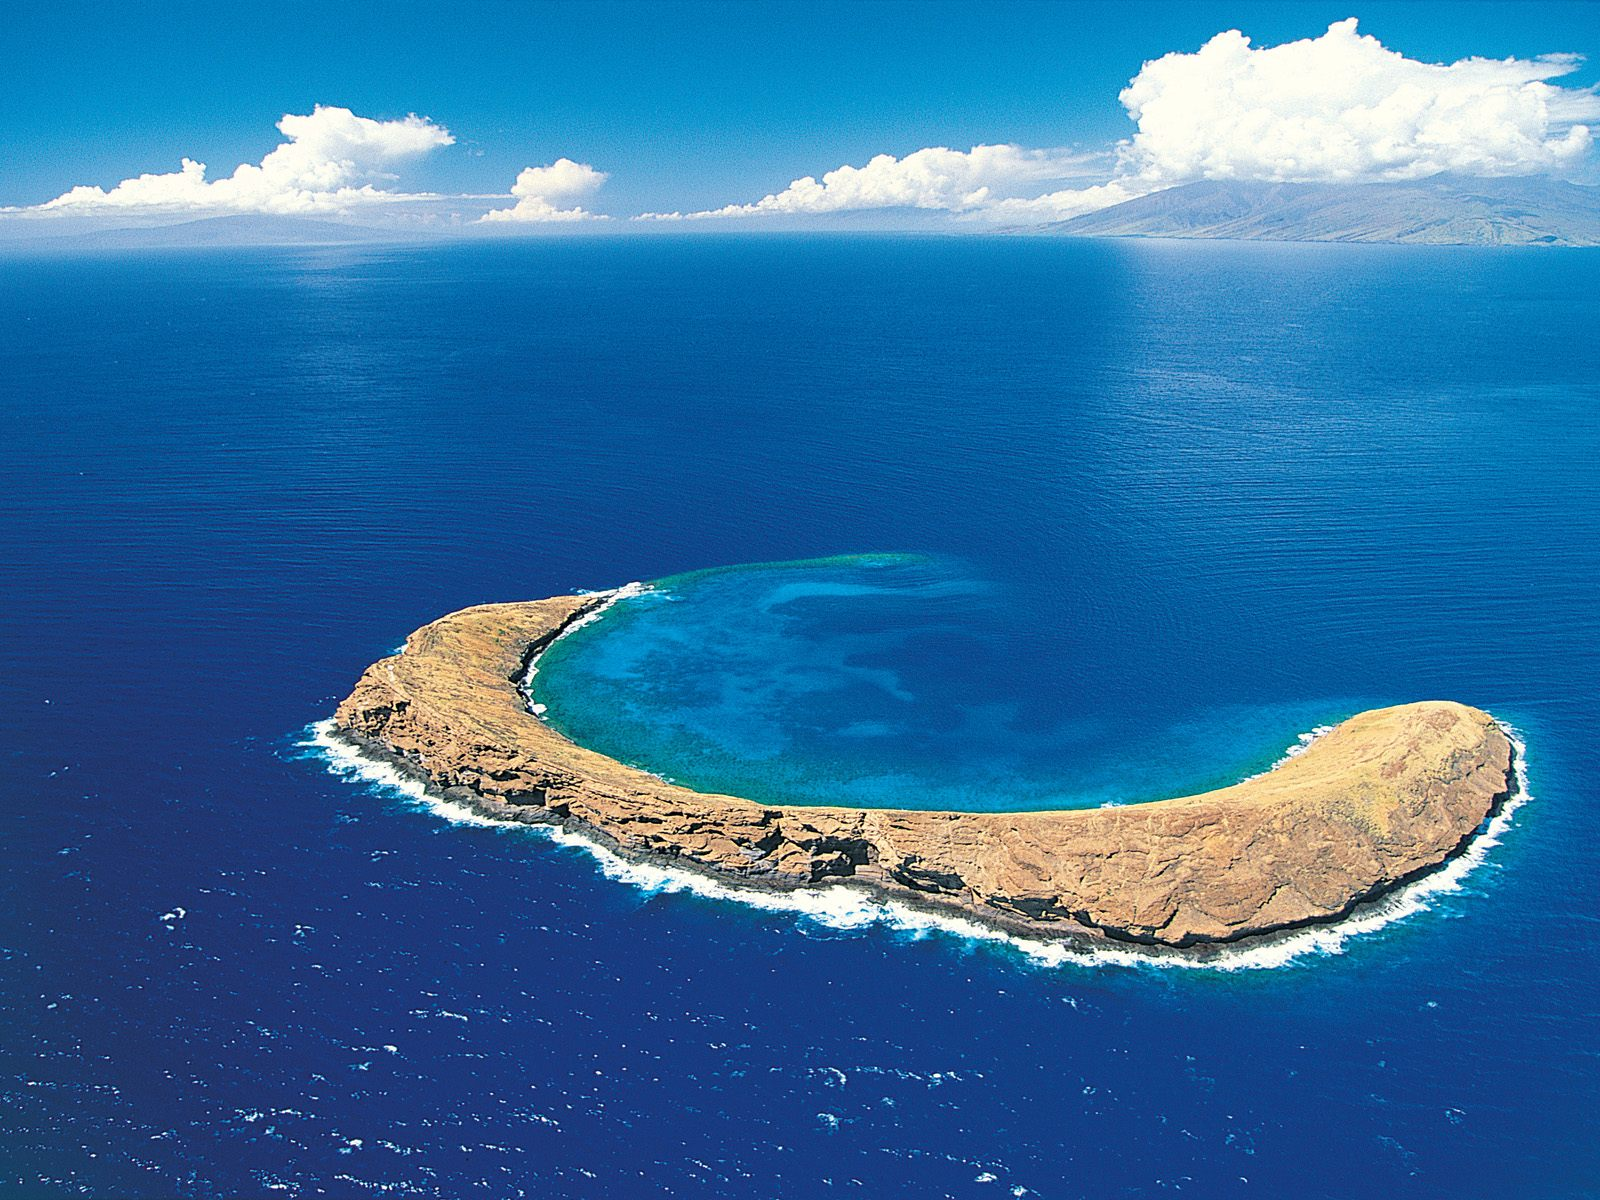 Molokini Crater Maui Hawaiian Islands Backgrounds